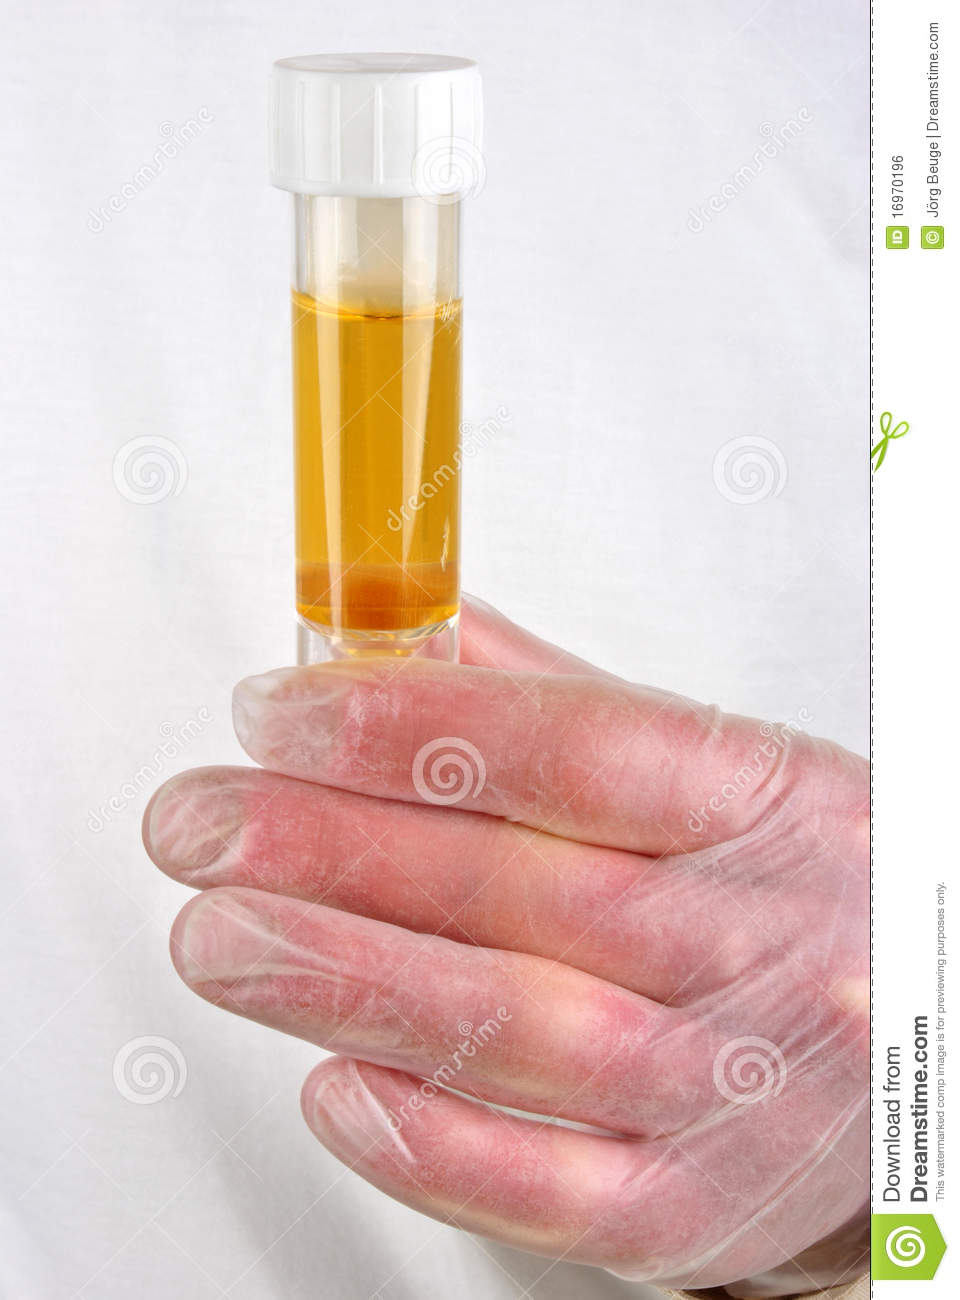 Human Urine In A Sample Bottle Royalty Free Stock Image - Image ...